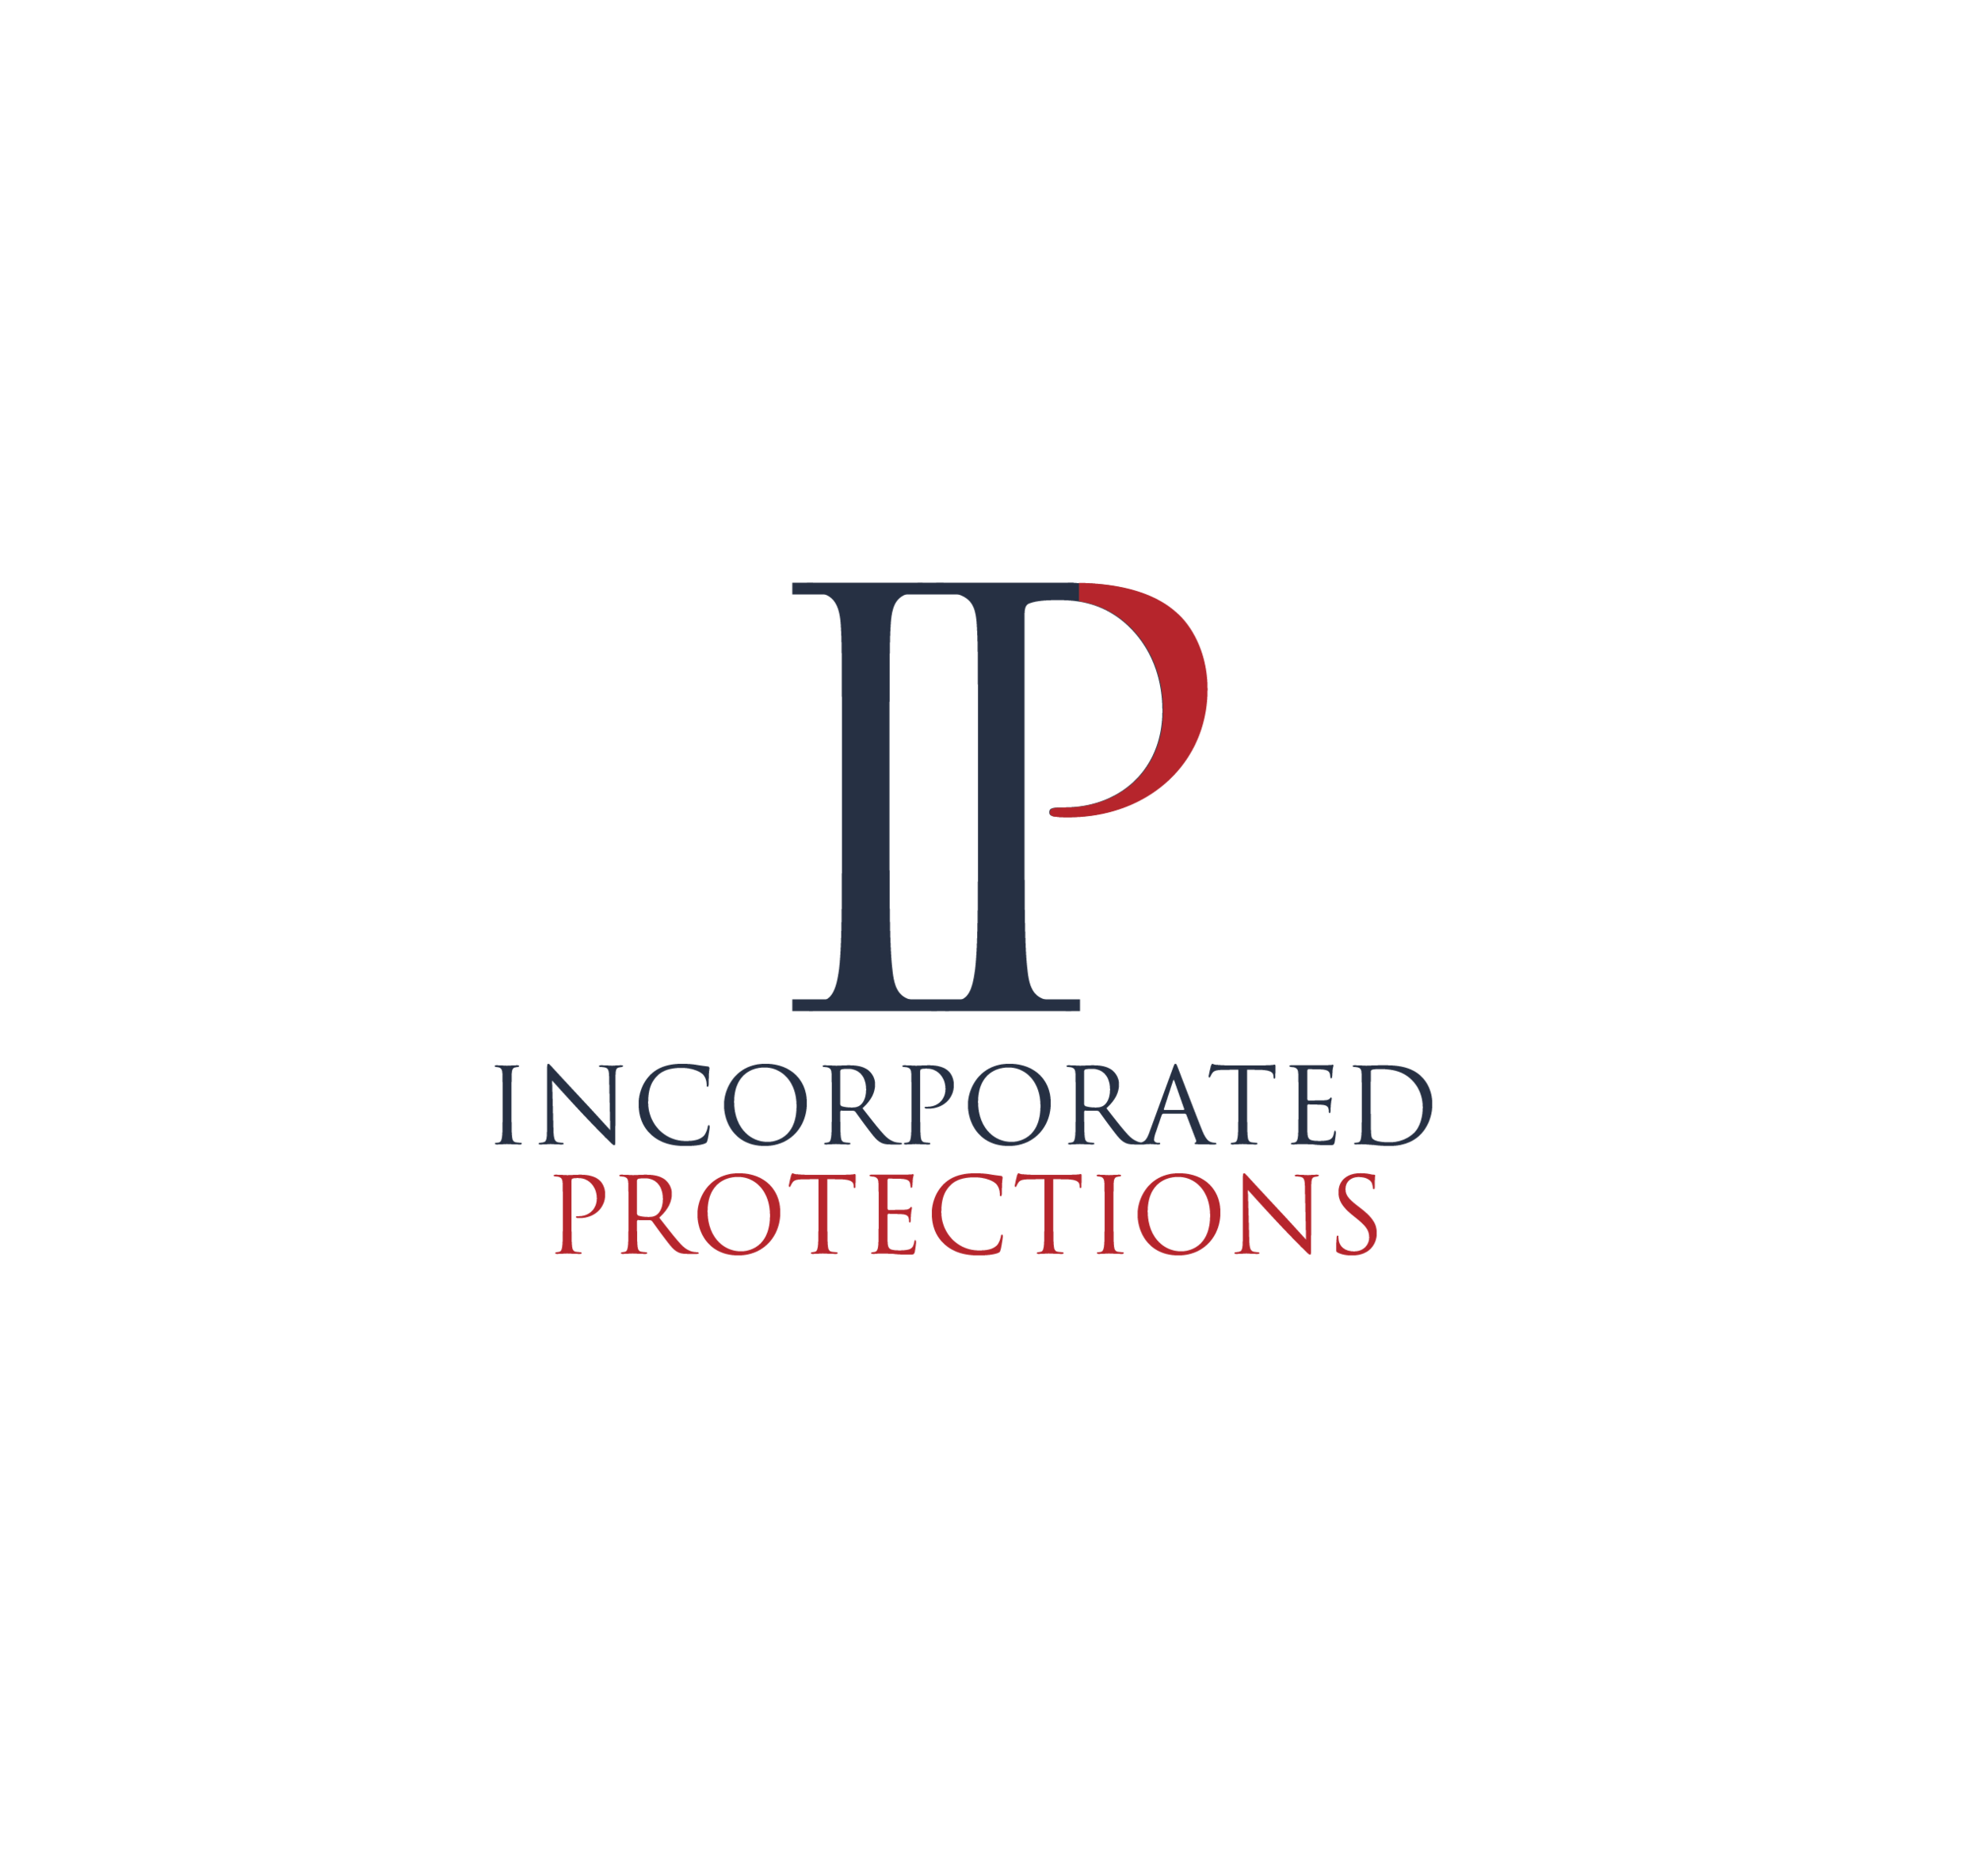 IncorporatedProtections-FC-12.png